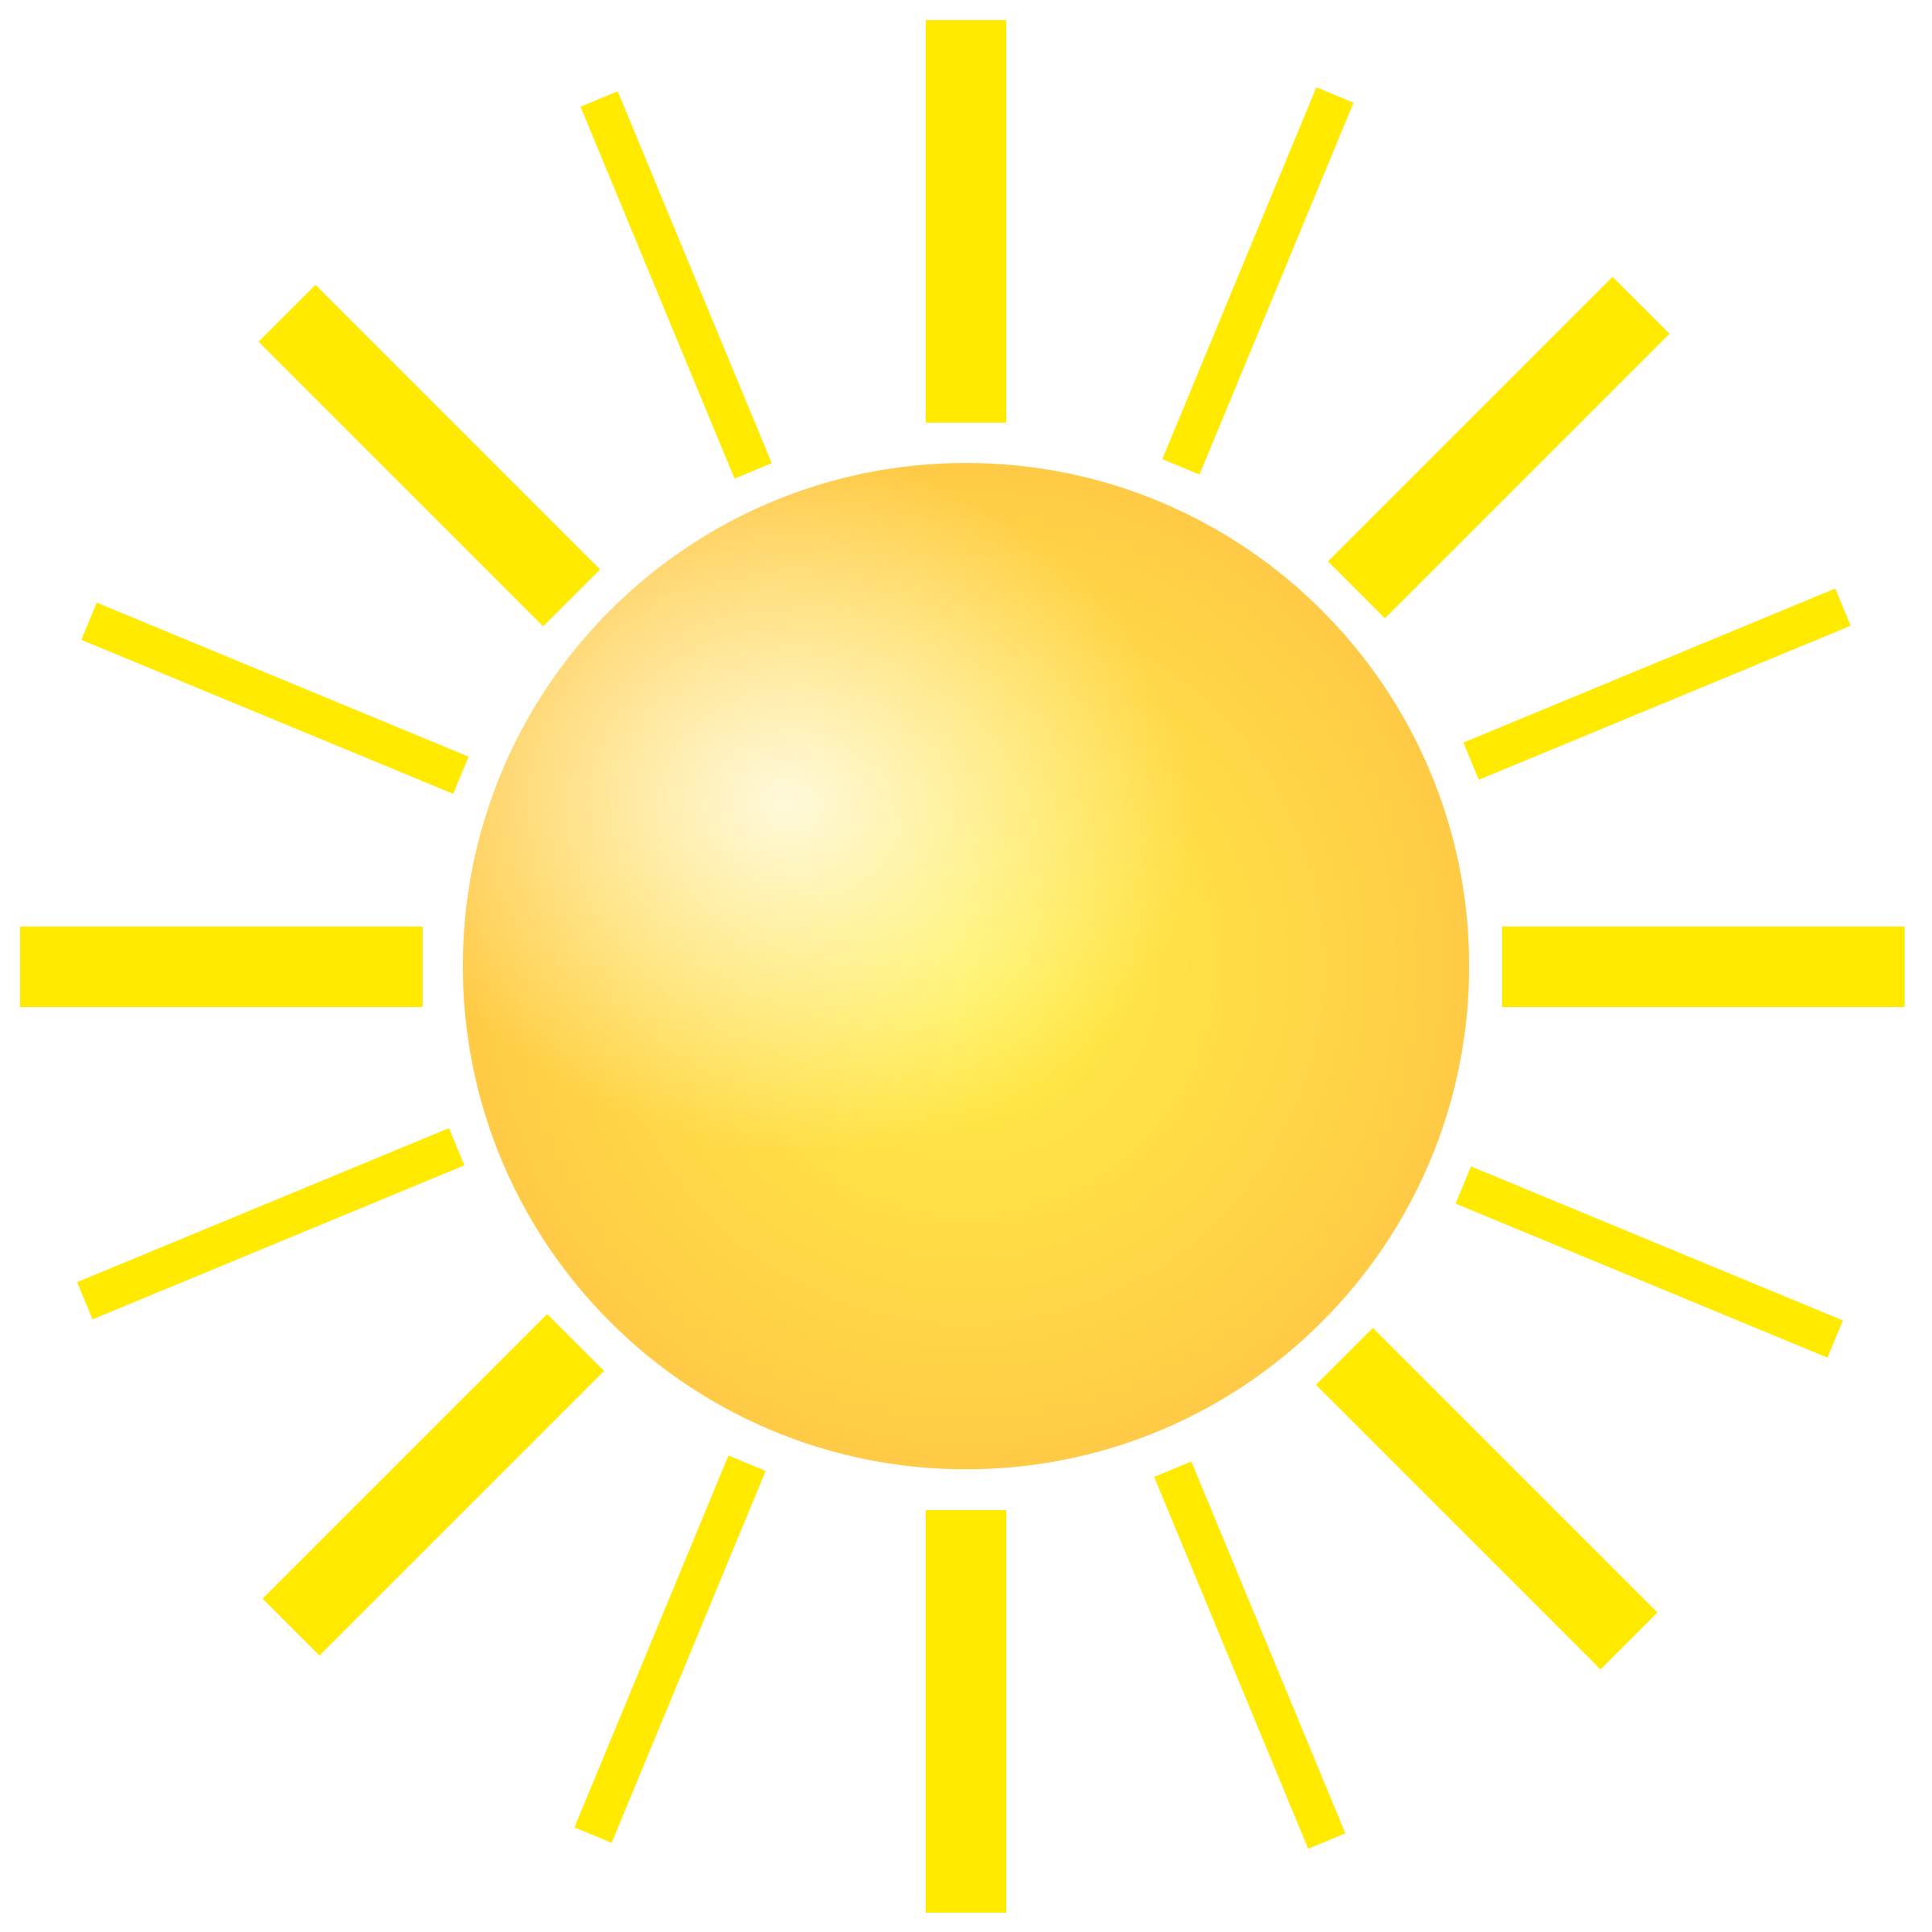 Sun clipart with 22 rays banner free Clipart - sun banner free